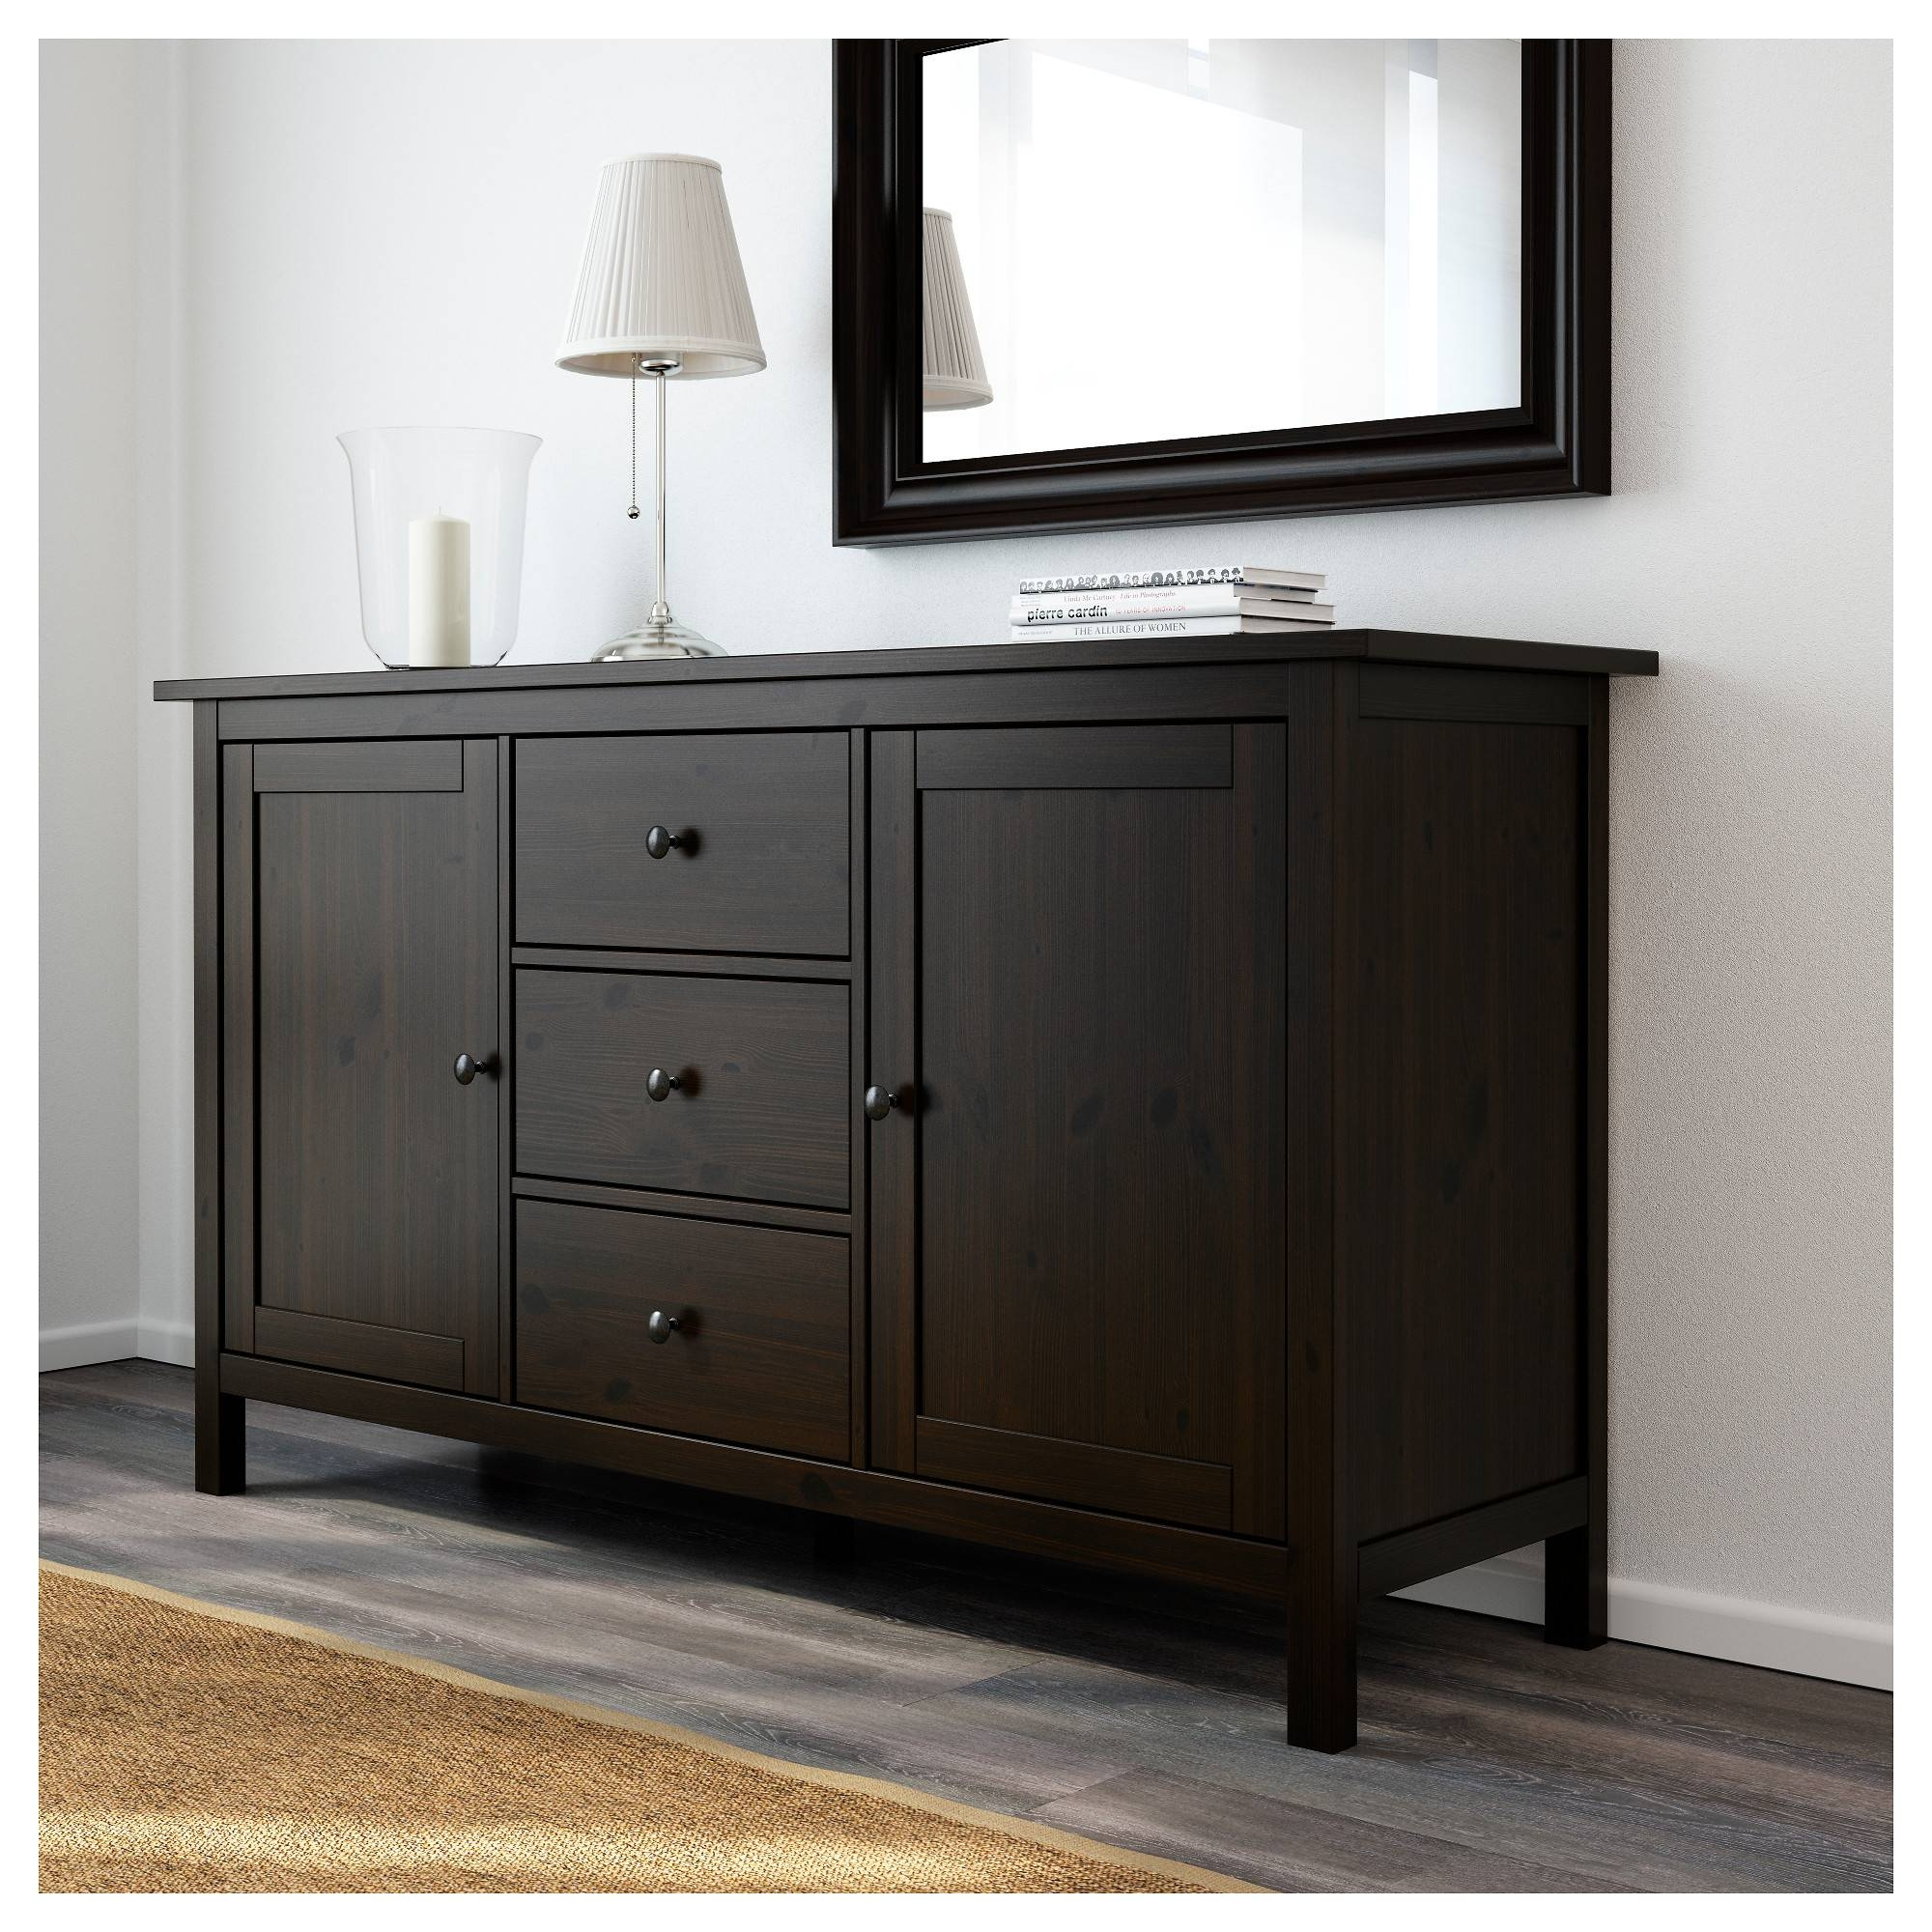 Hemnes Sideboard Black-Brown 157X88 Cm - Ikea inside Dark Wood Sideboards (Image 6 of 15)